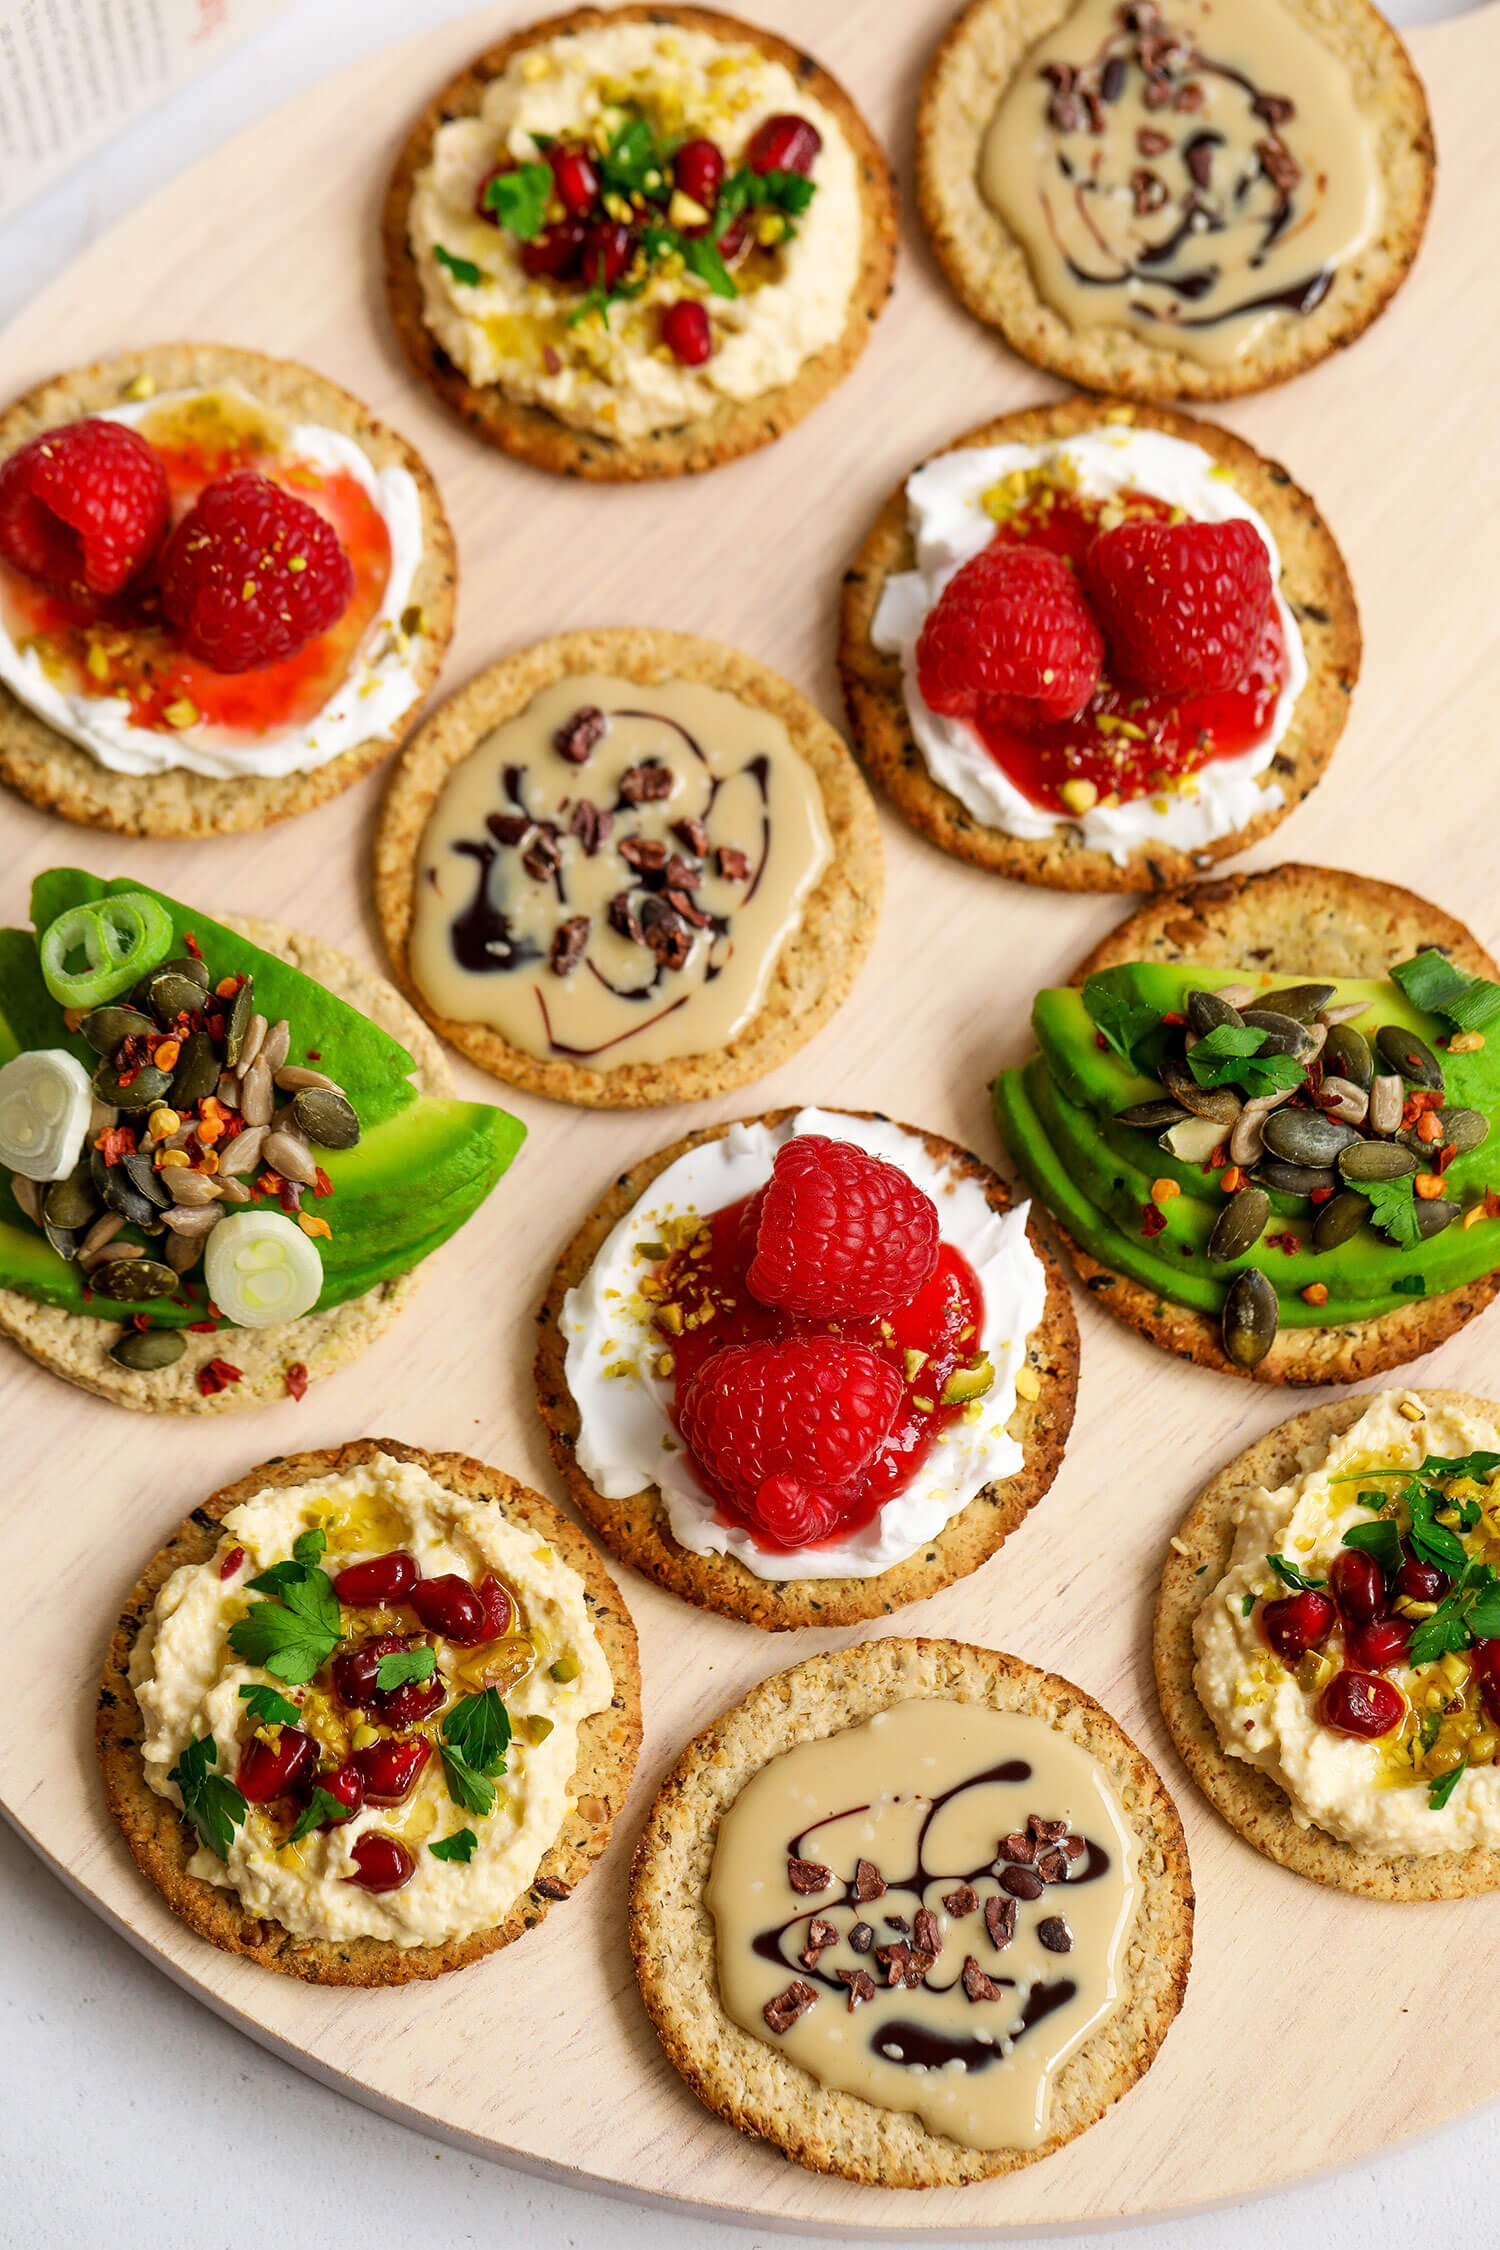 4 Vegan Cracker Topping Ideas